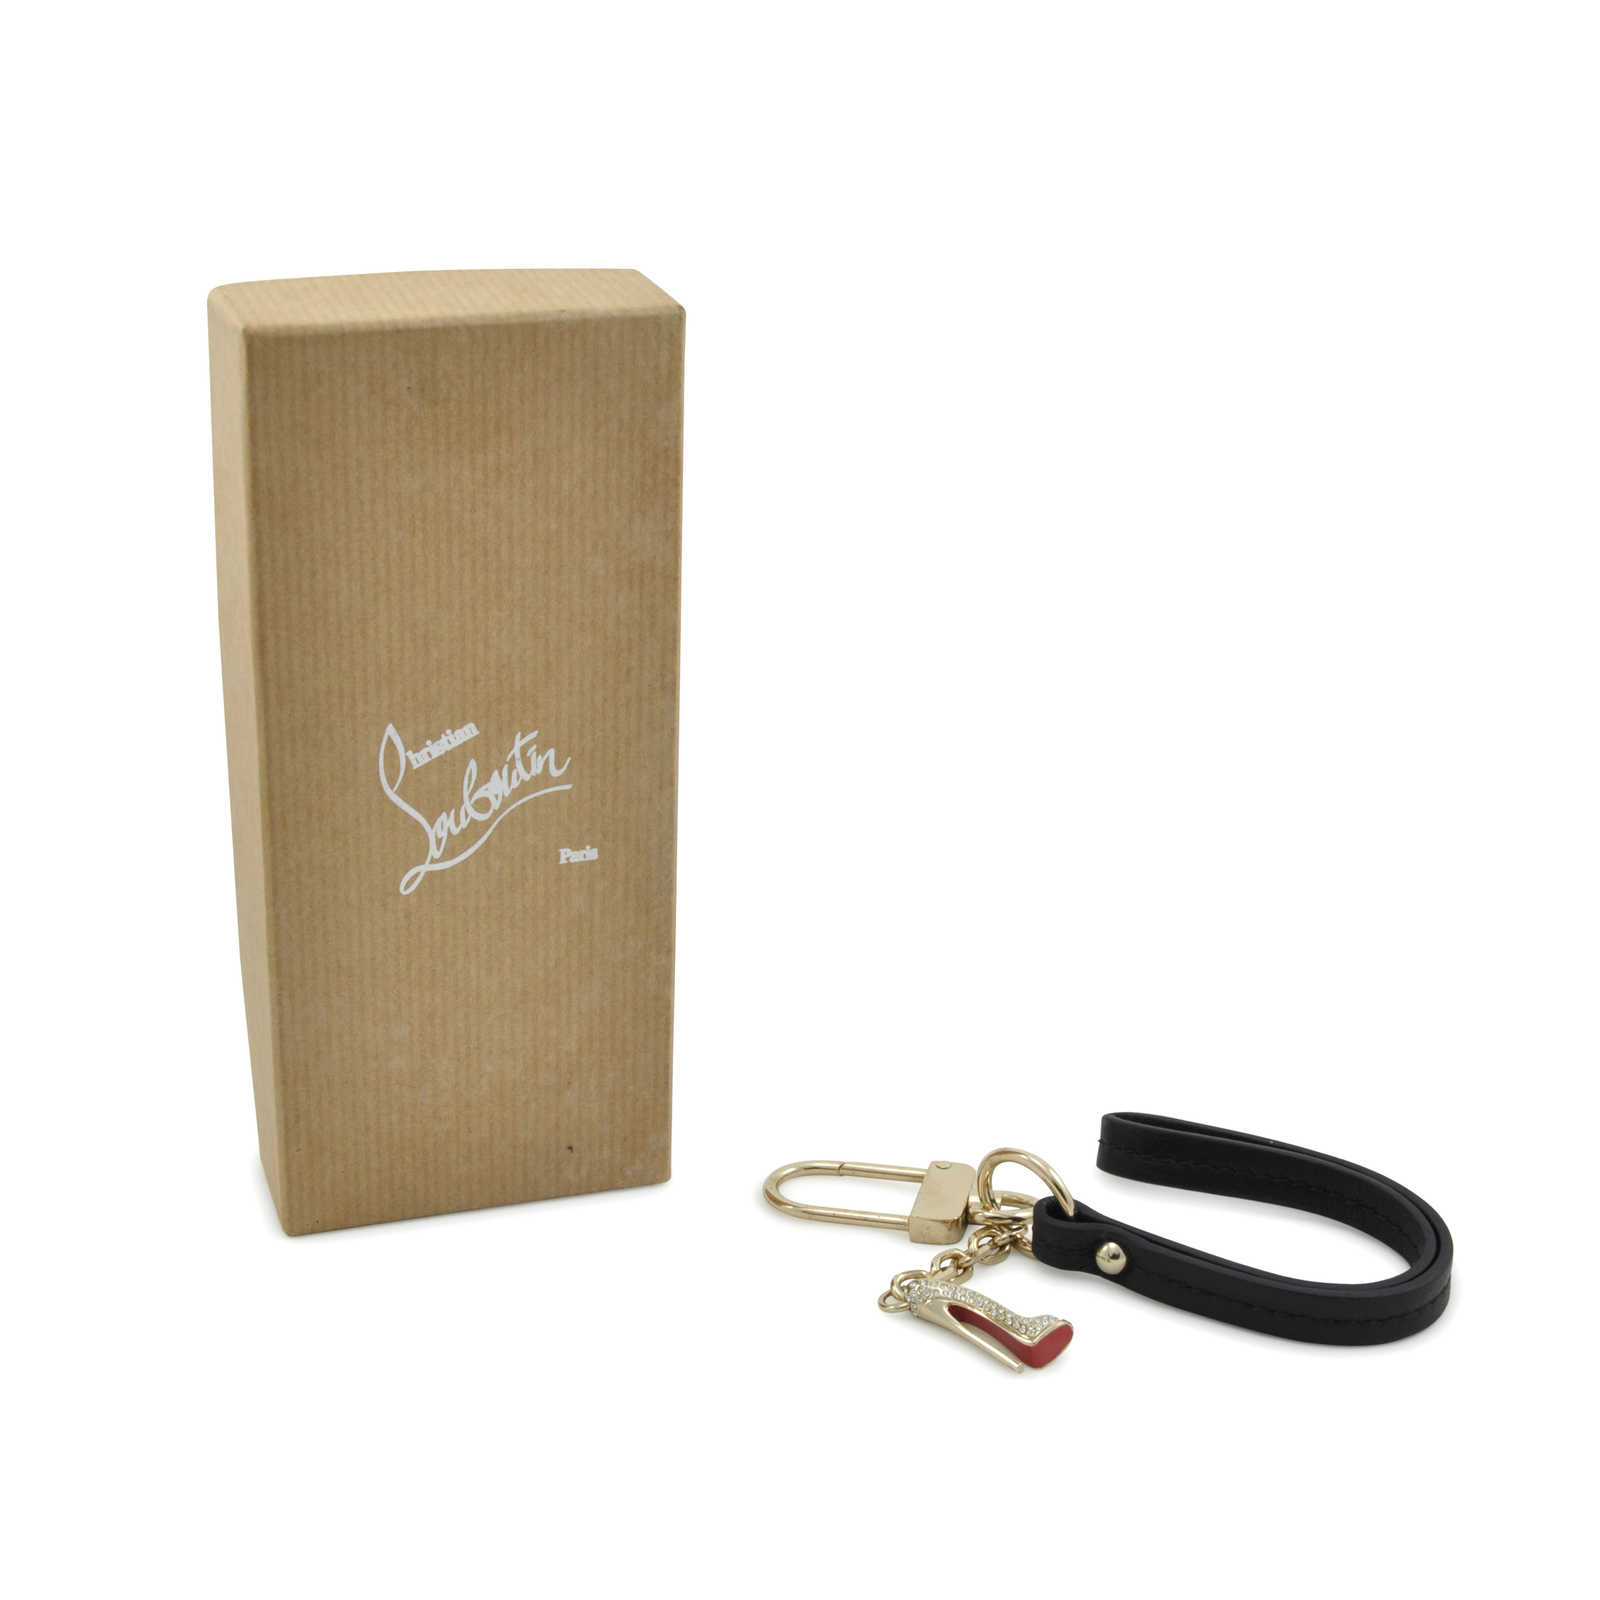 Authentic Second Hand Christian Louboutin Pigalle Keychain Pss 284